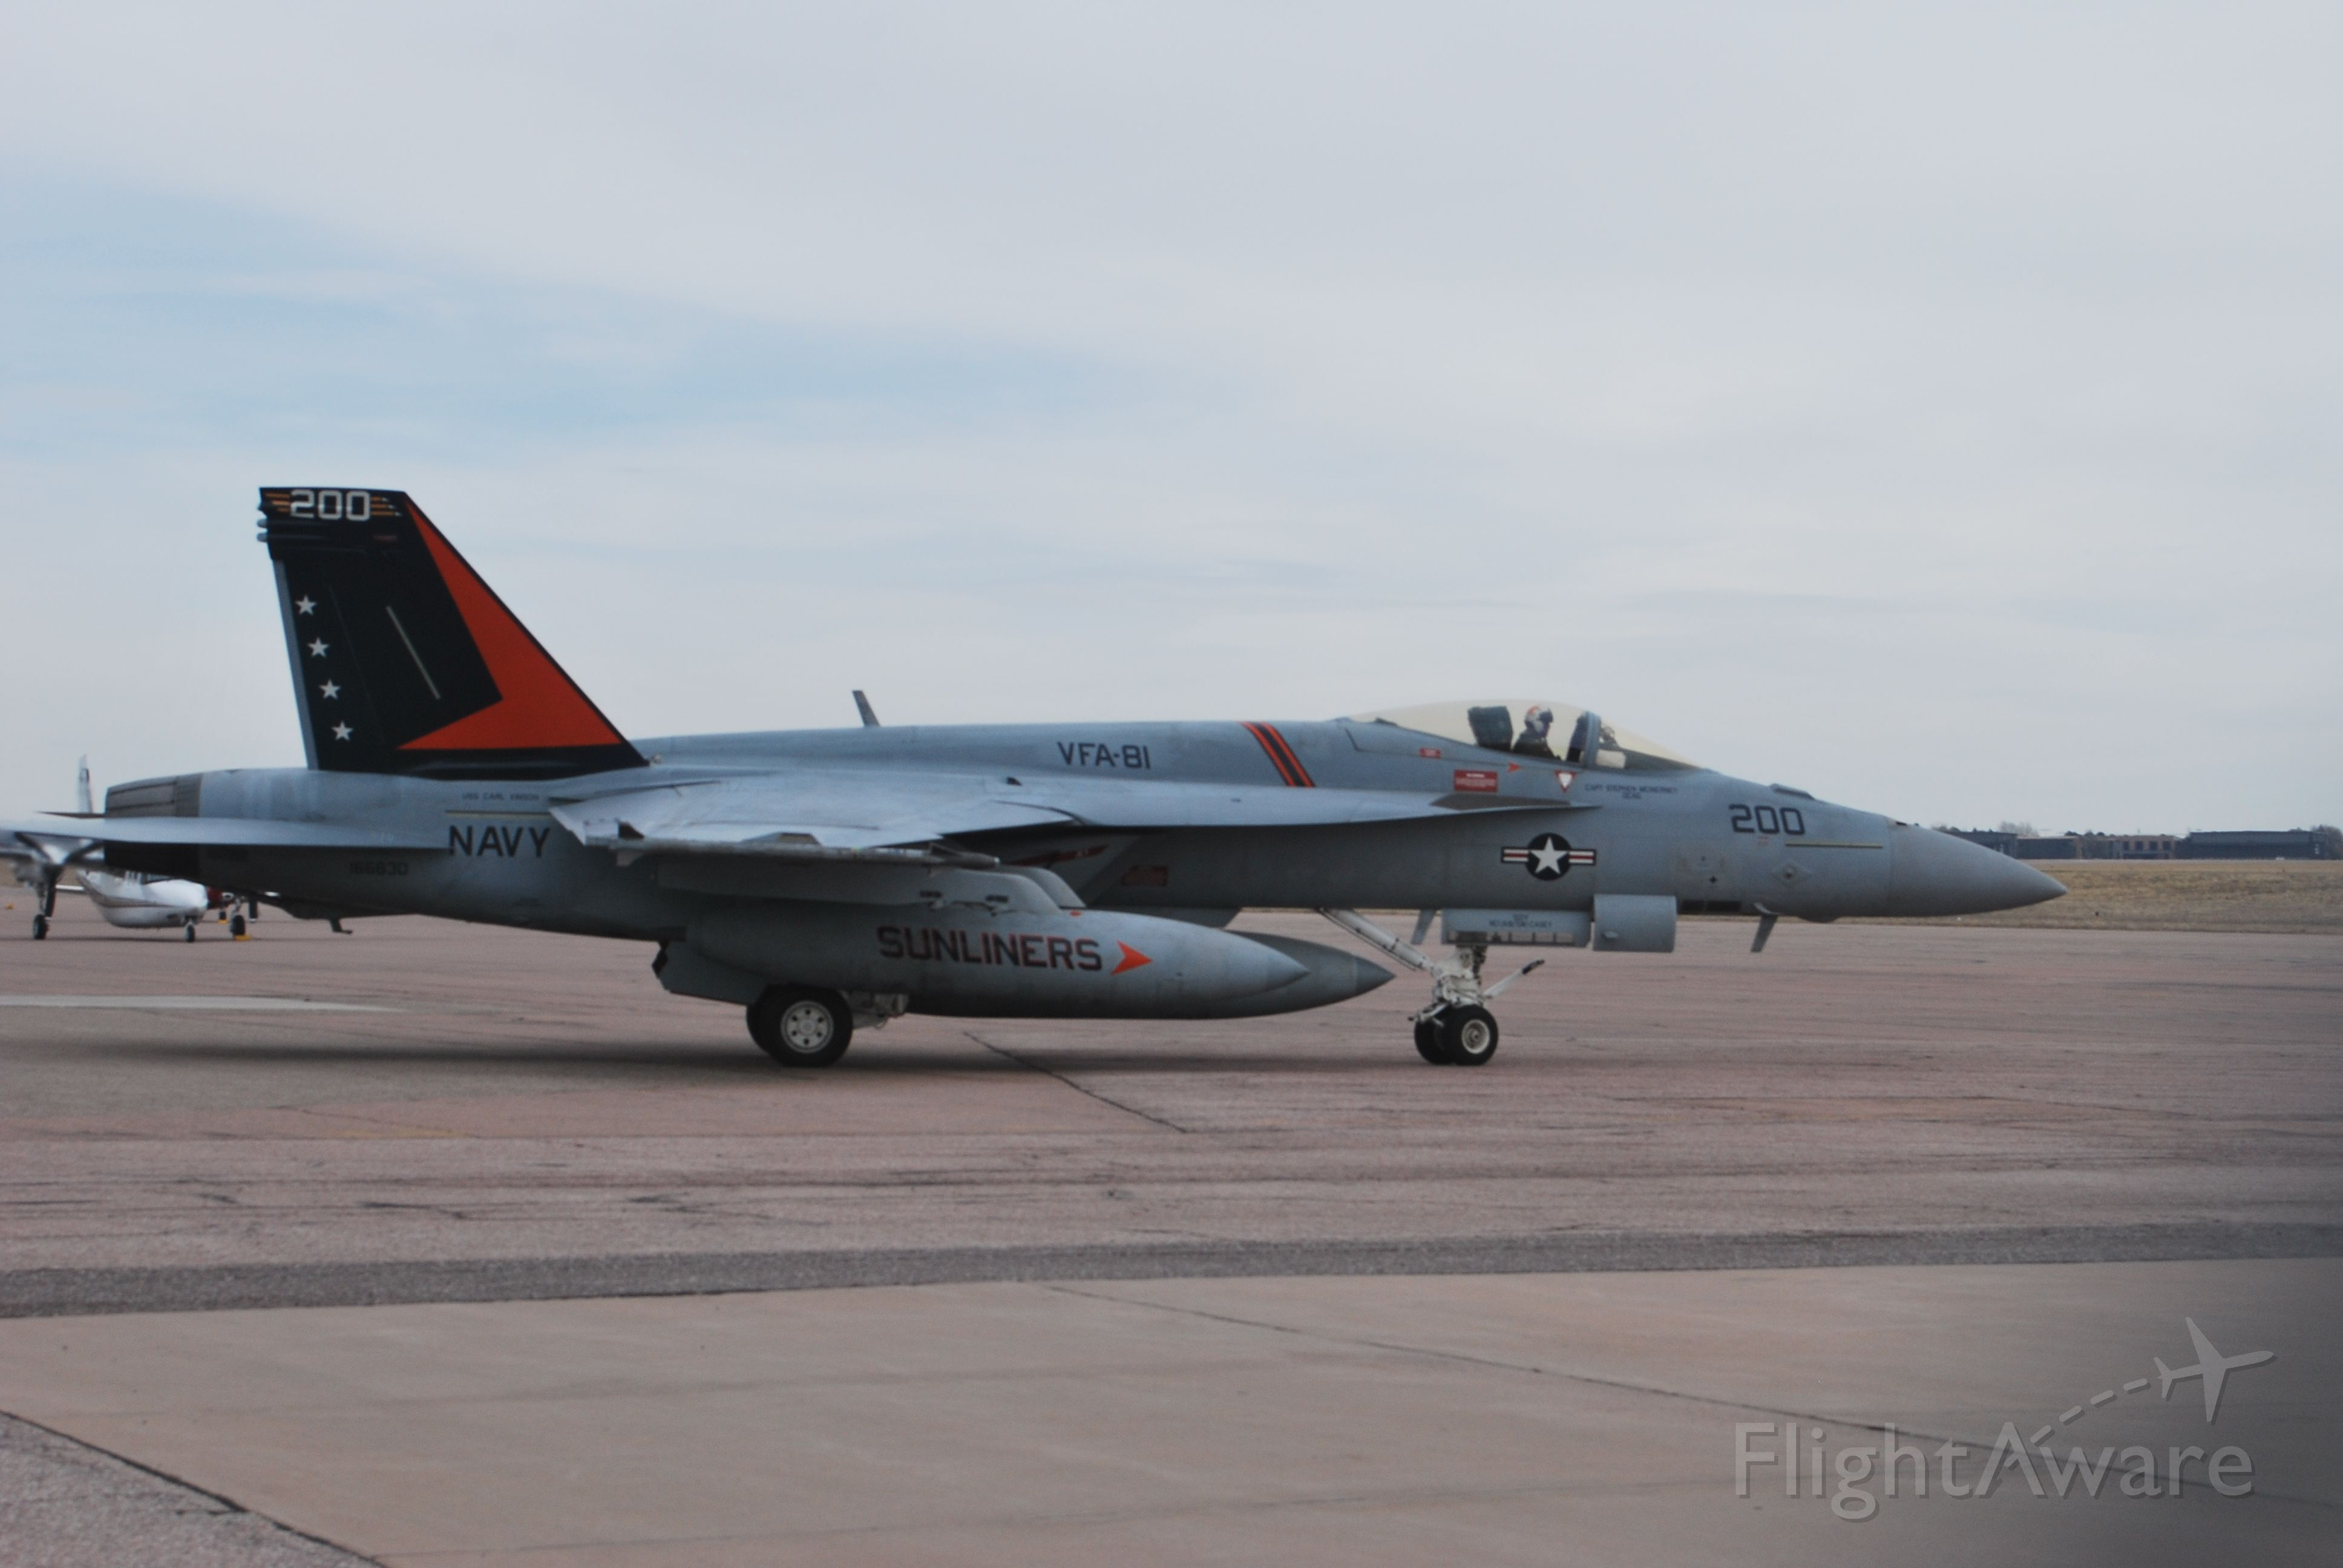 16-6830 — - post deployment fuel stop at colorado springs, colorado KCOS